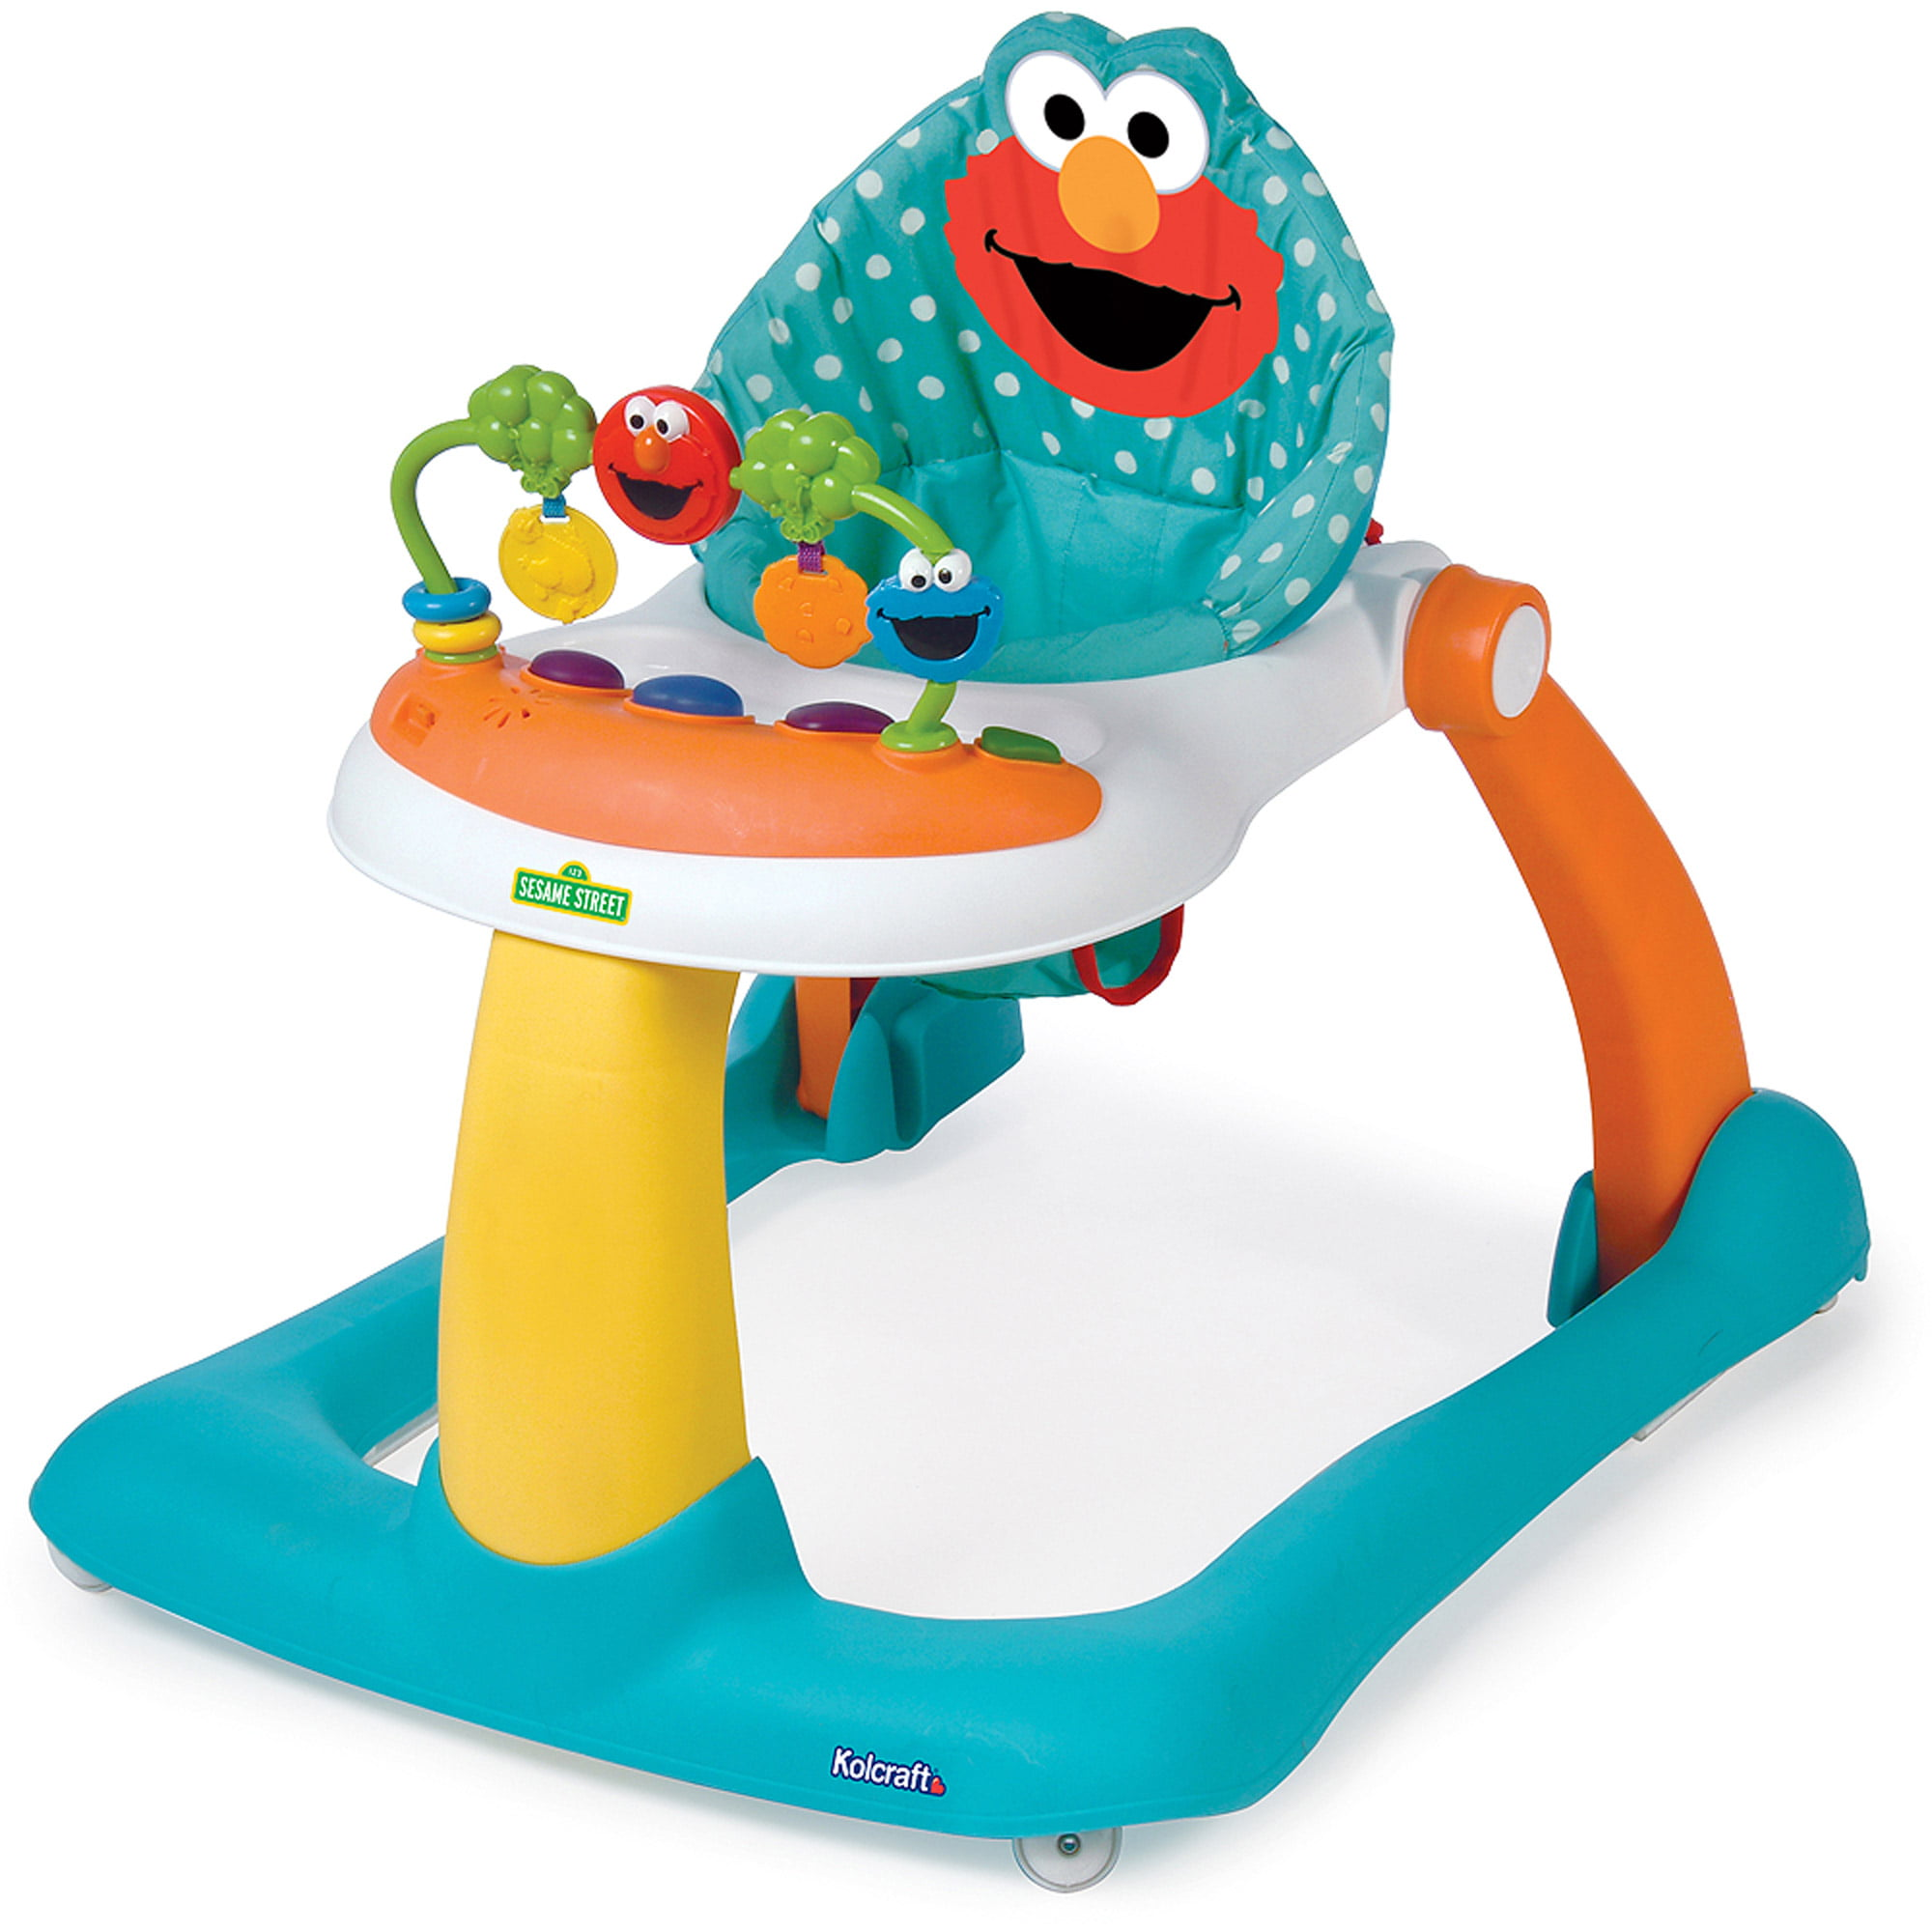 Baby bath chair walmart - Baby Bath Chair Walmart 59